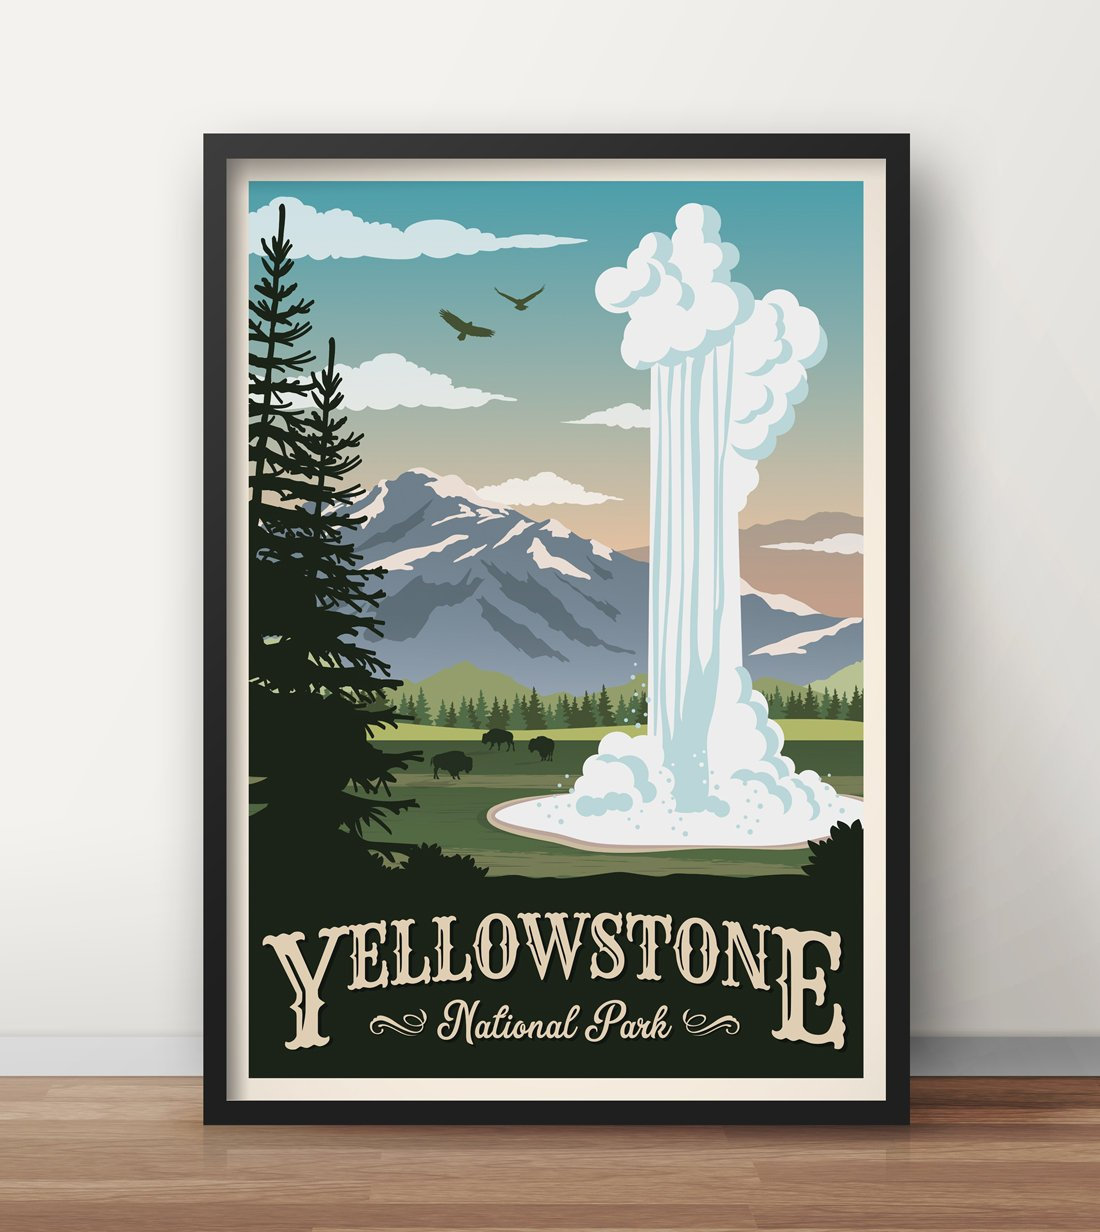 VINTAGE YELLOWSTONE NATIONAL PARK US TRAVEL A3 POSTER PRINT